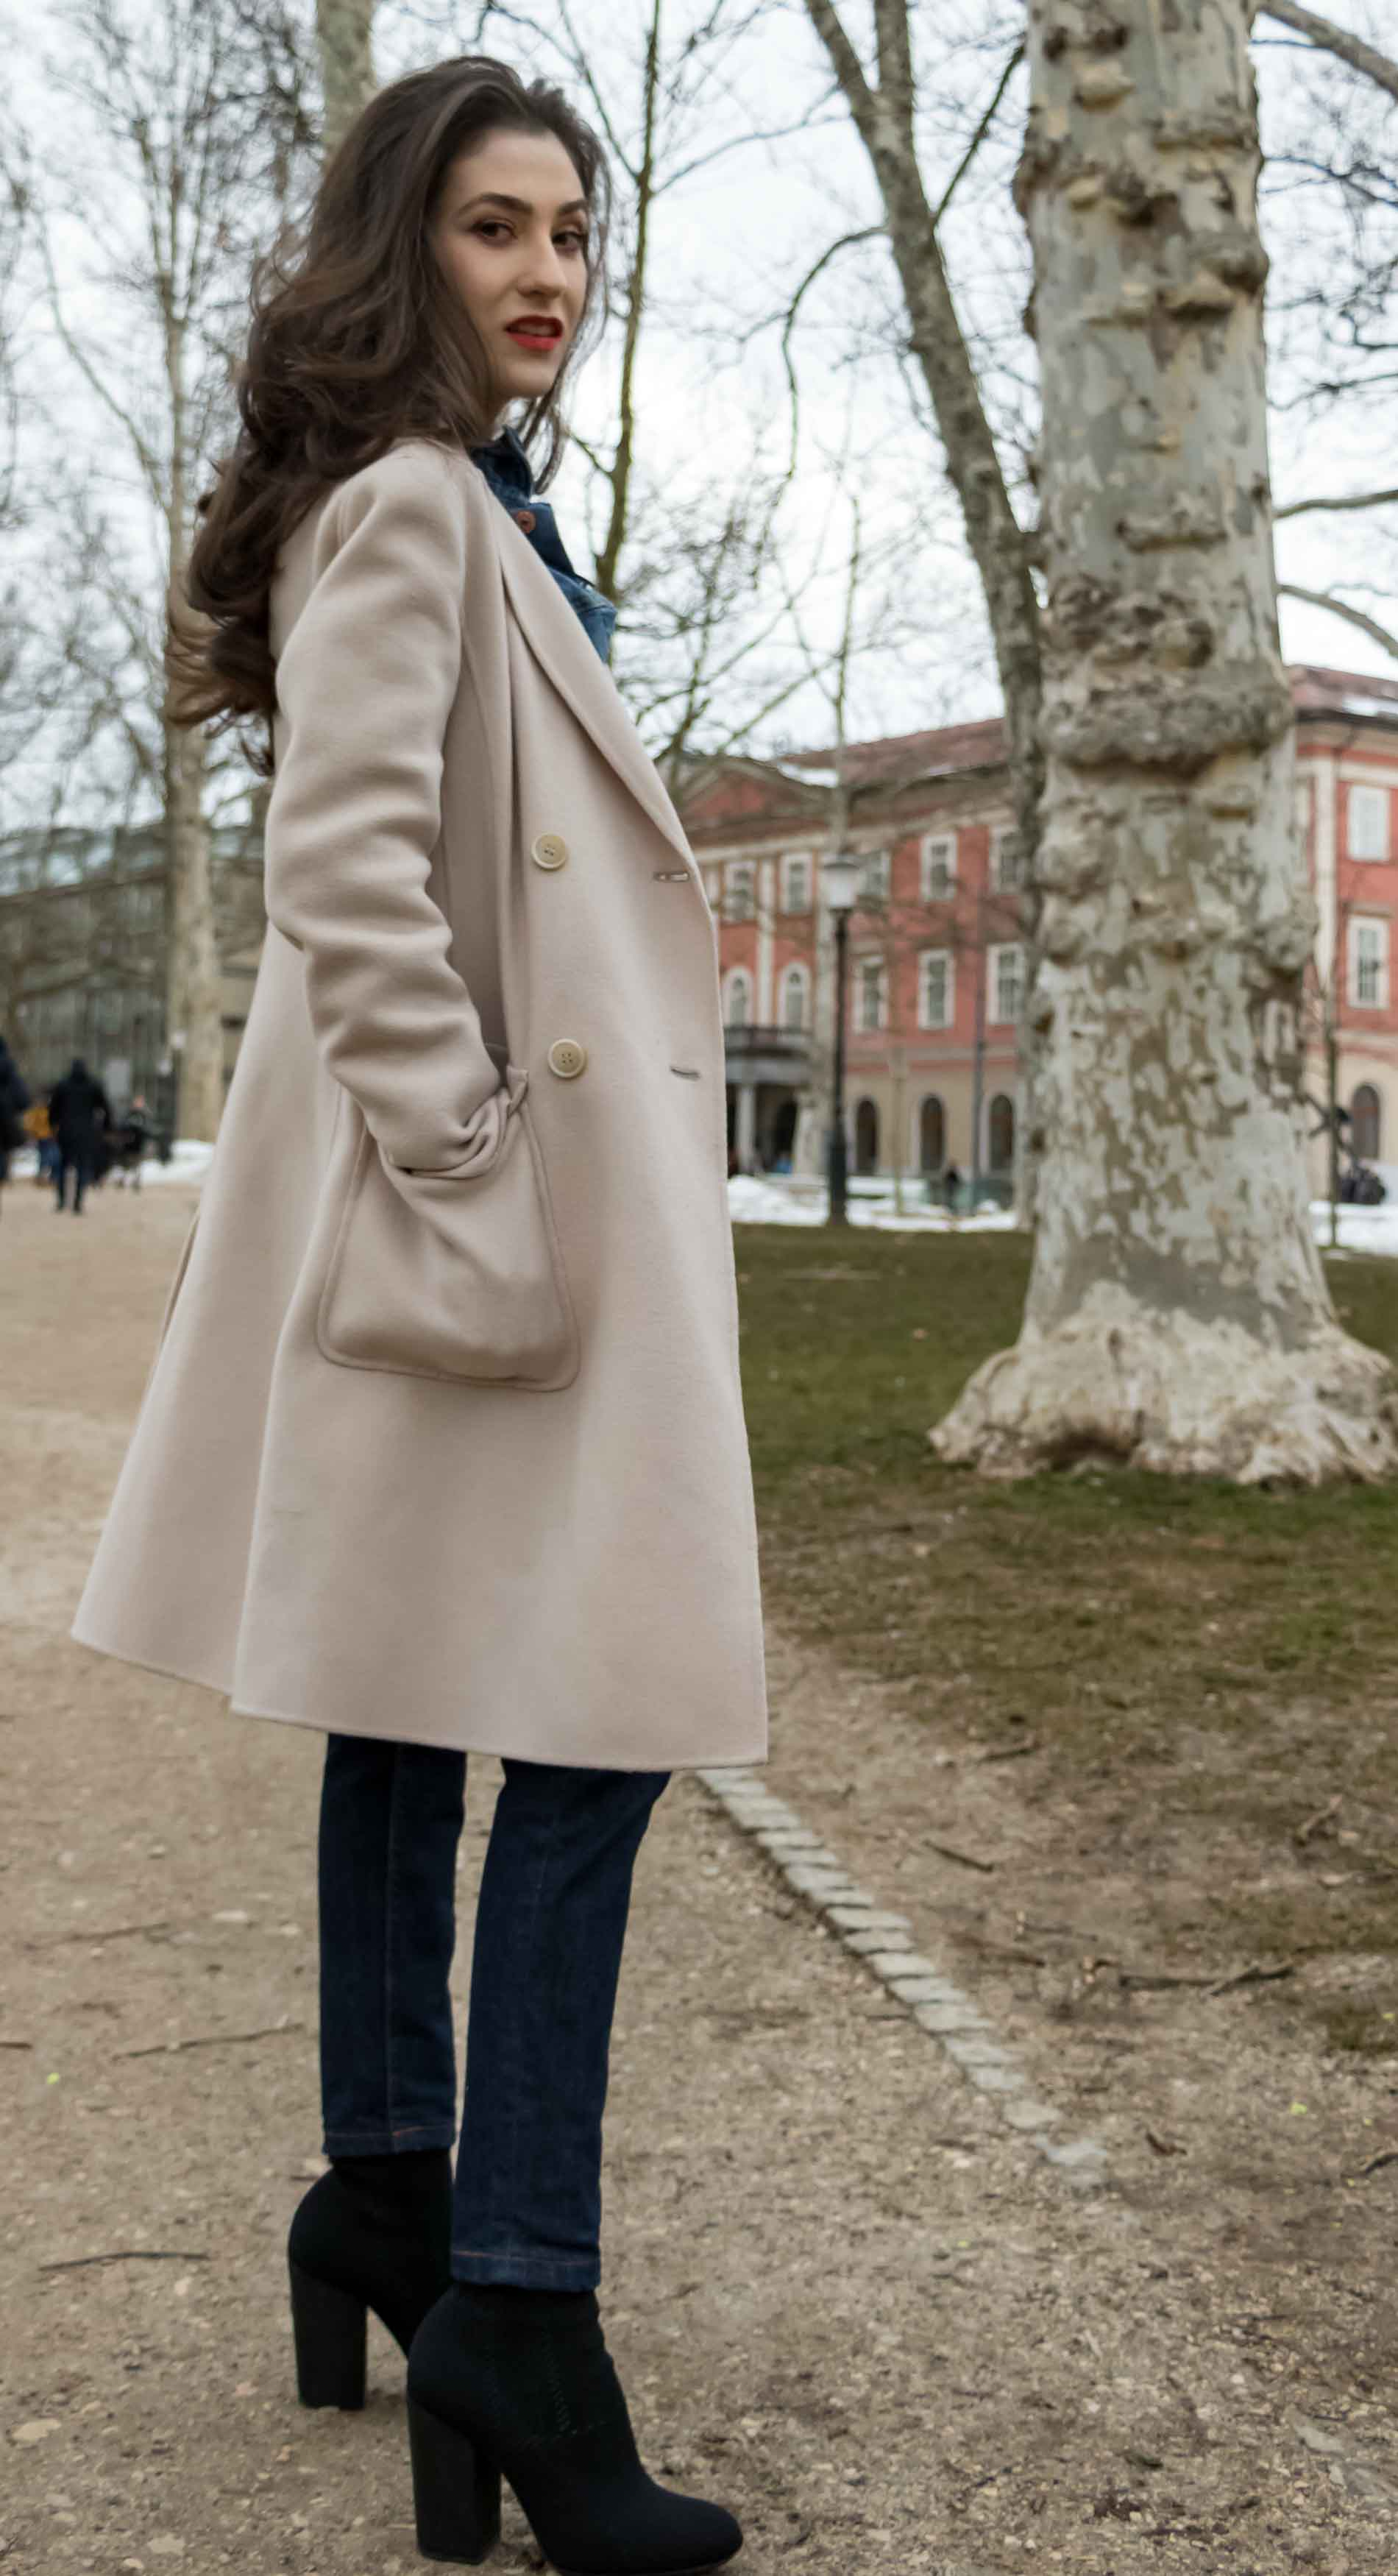 Fashion Blogger Veronika Lipar of Brunette from Wall Street wearing chic tapered straight-leg dark blue denim jeans from A.P.C., pastel pink, off-white double breasted Weekend Maxmara coat, black top handle bag, blue leather gloves and black sock ankle boots from Elena Iachi on the last days of winter